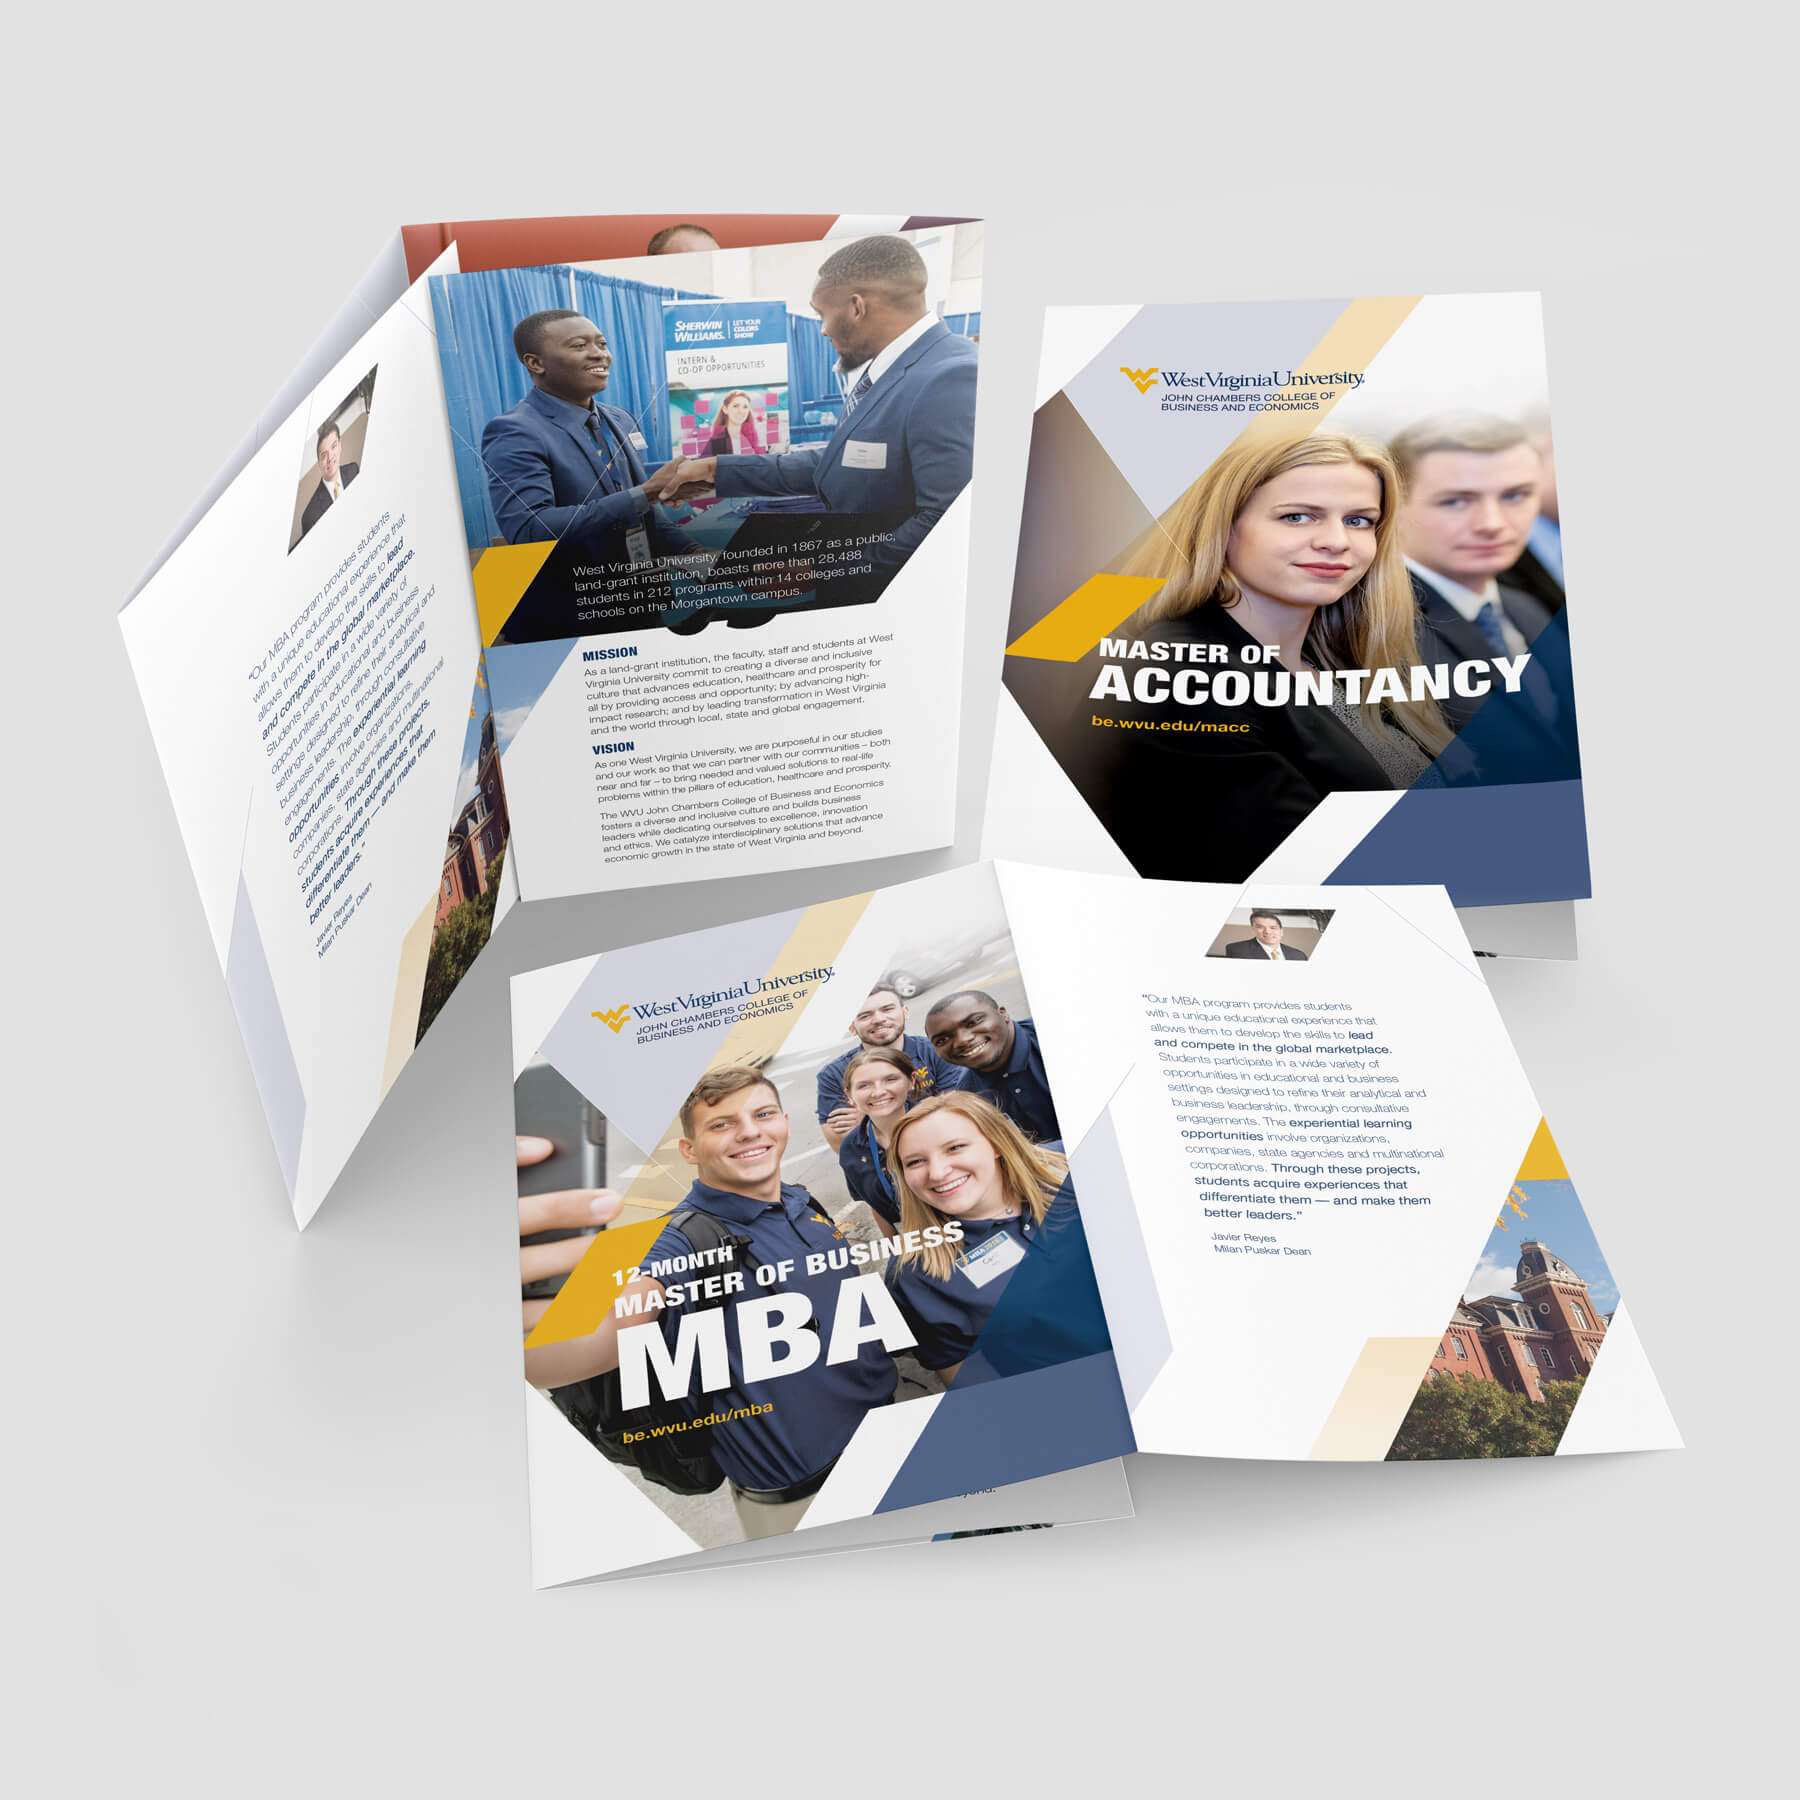 College brochure designs for MBA program